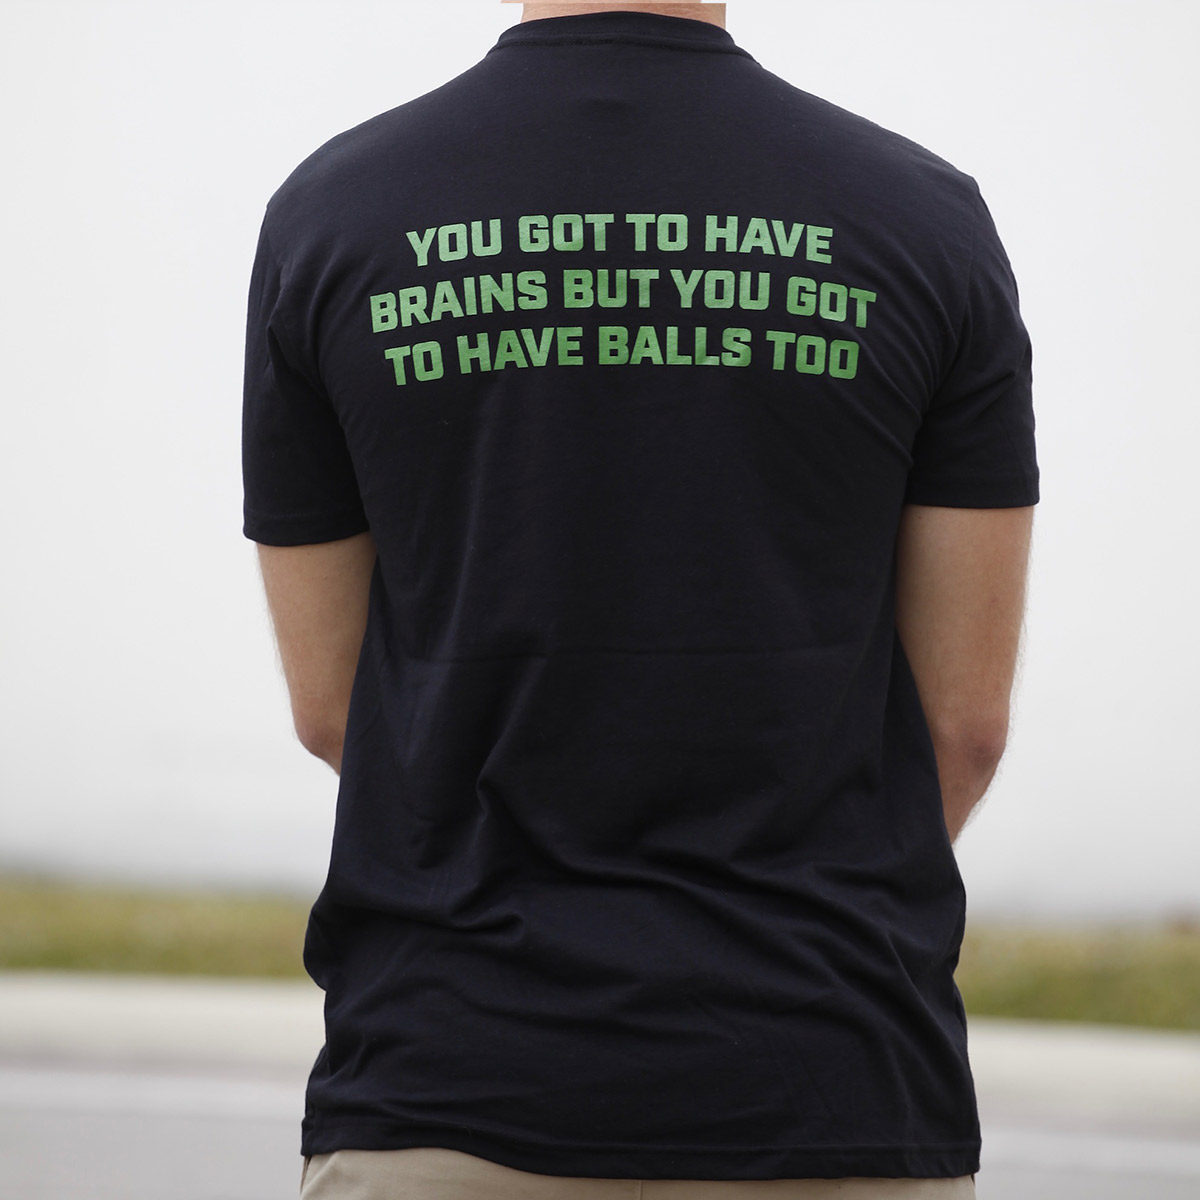 You got to have brains but you got to have balls too - black t shirt - back